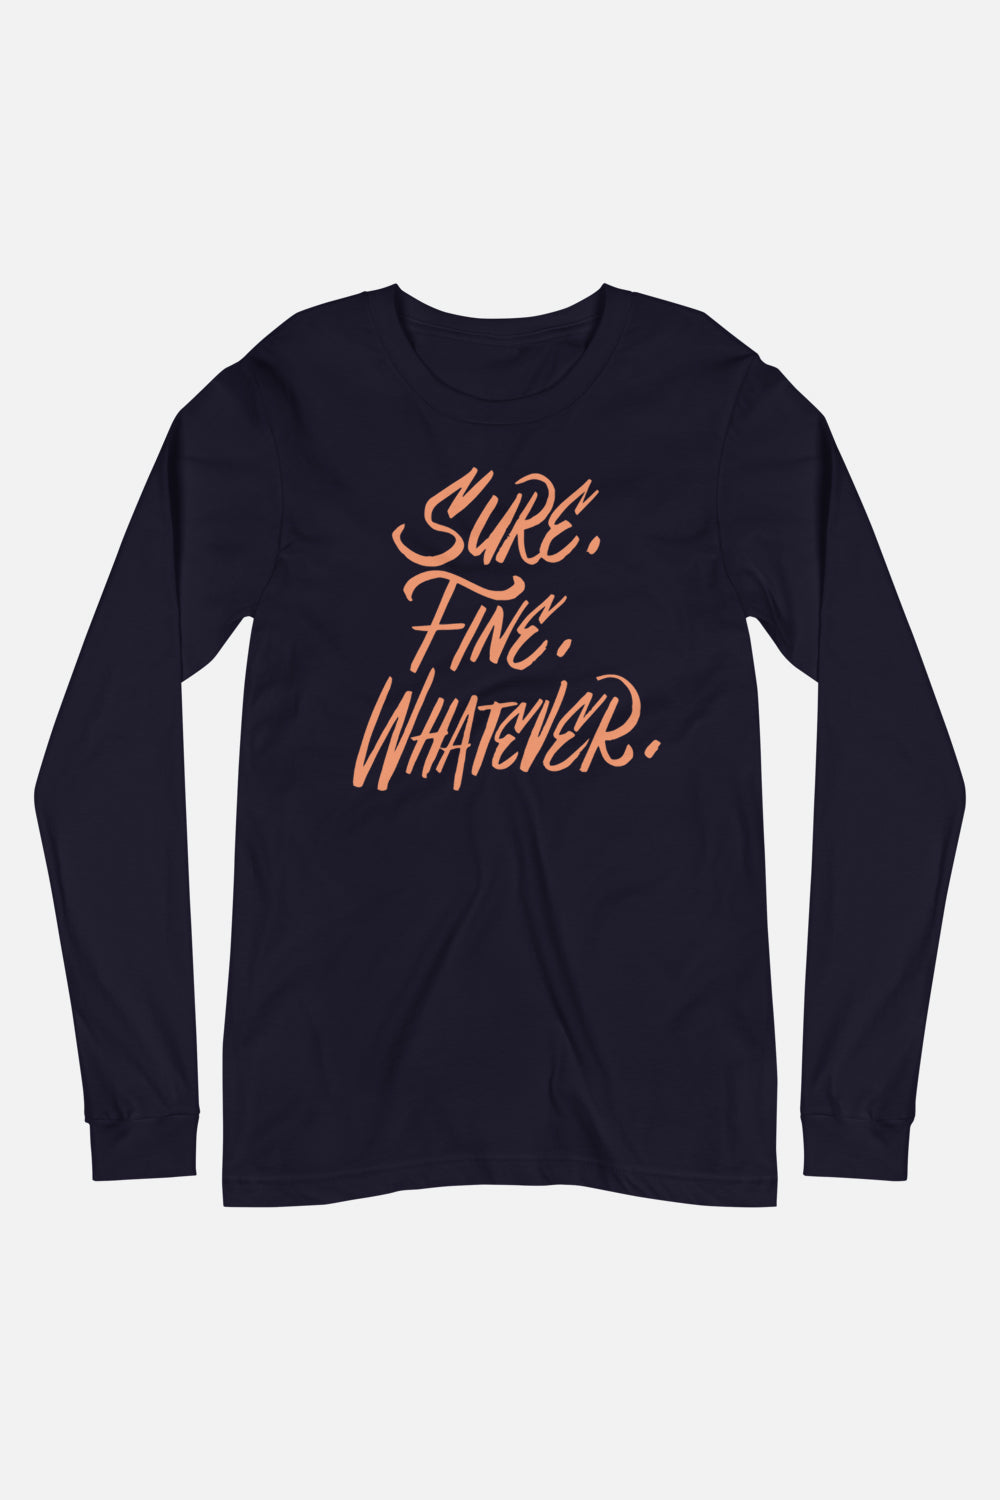 Sure. Fine. Whatever. Unisex Long Sleeve Tee